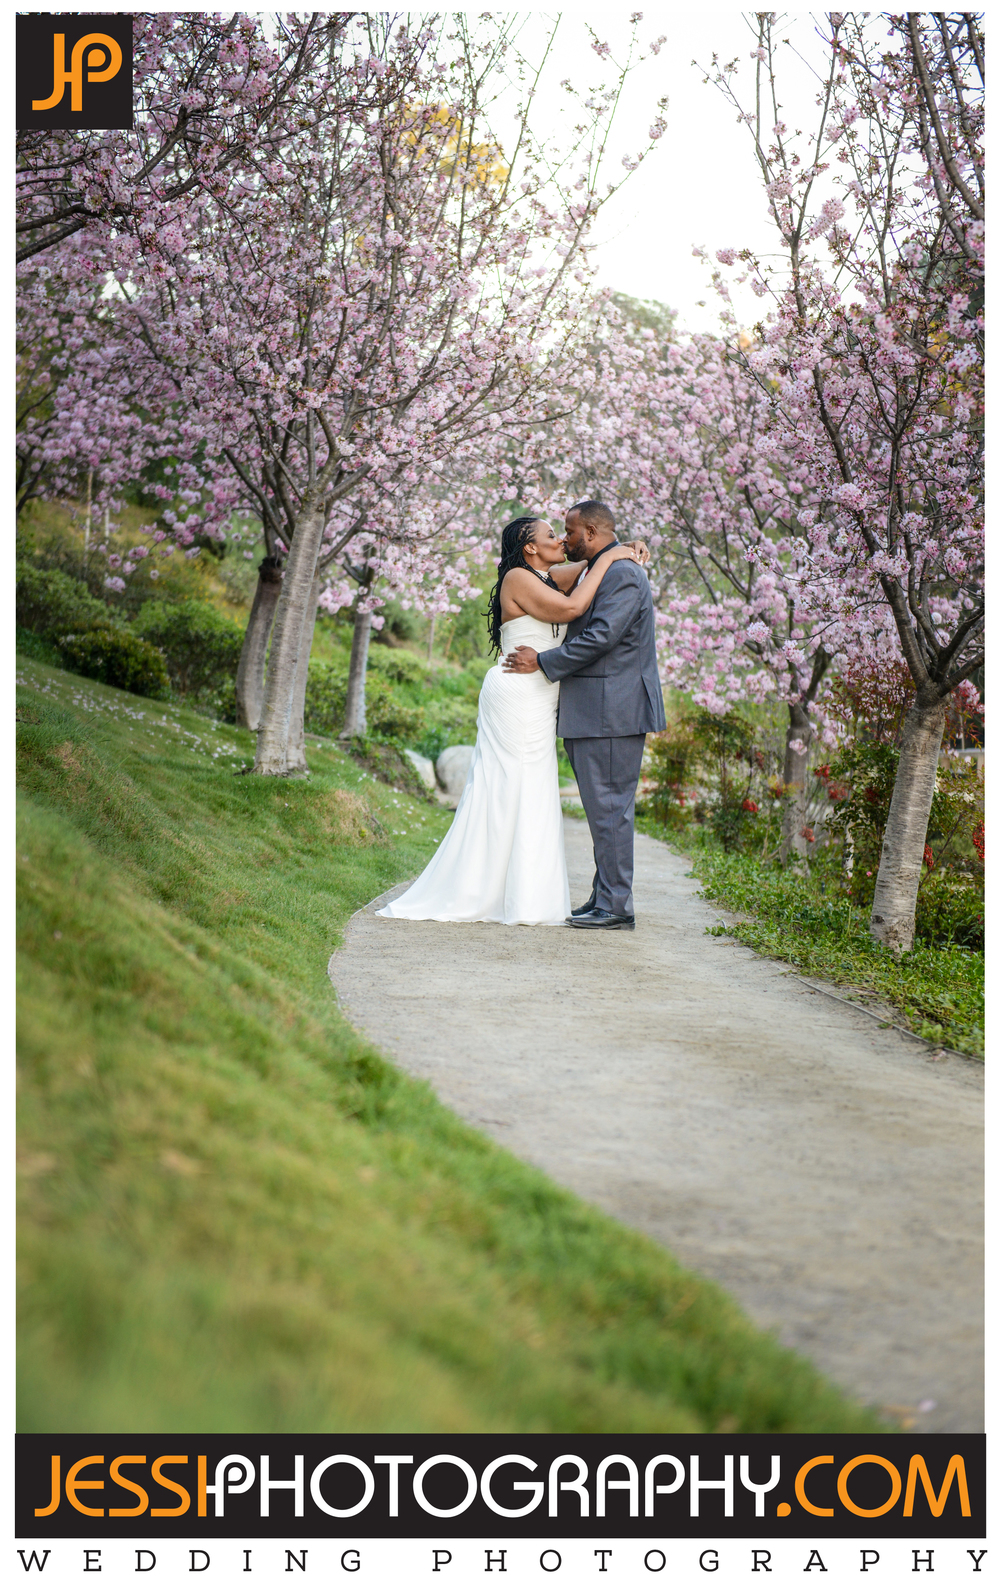 Top wedding photography portrait in the Japanese Garden